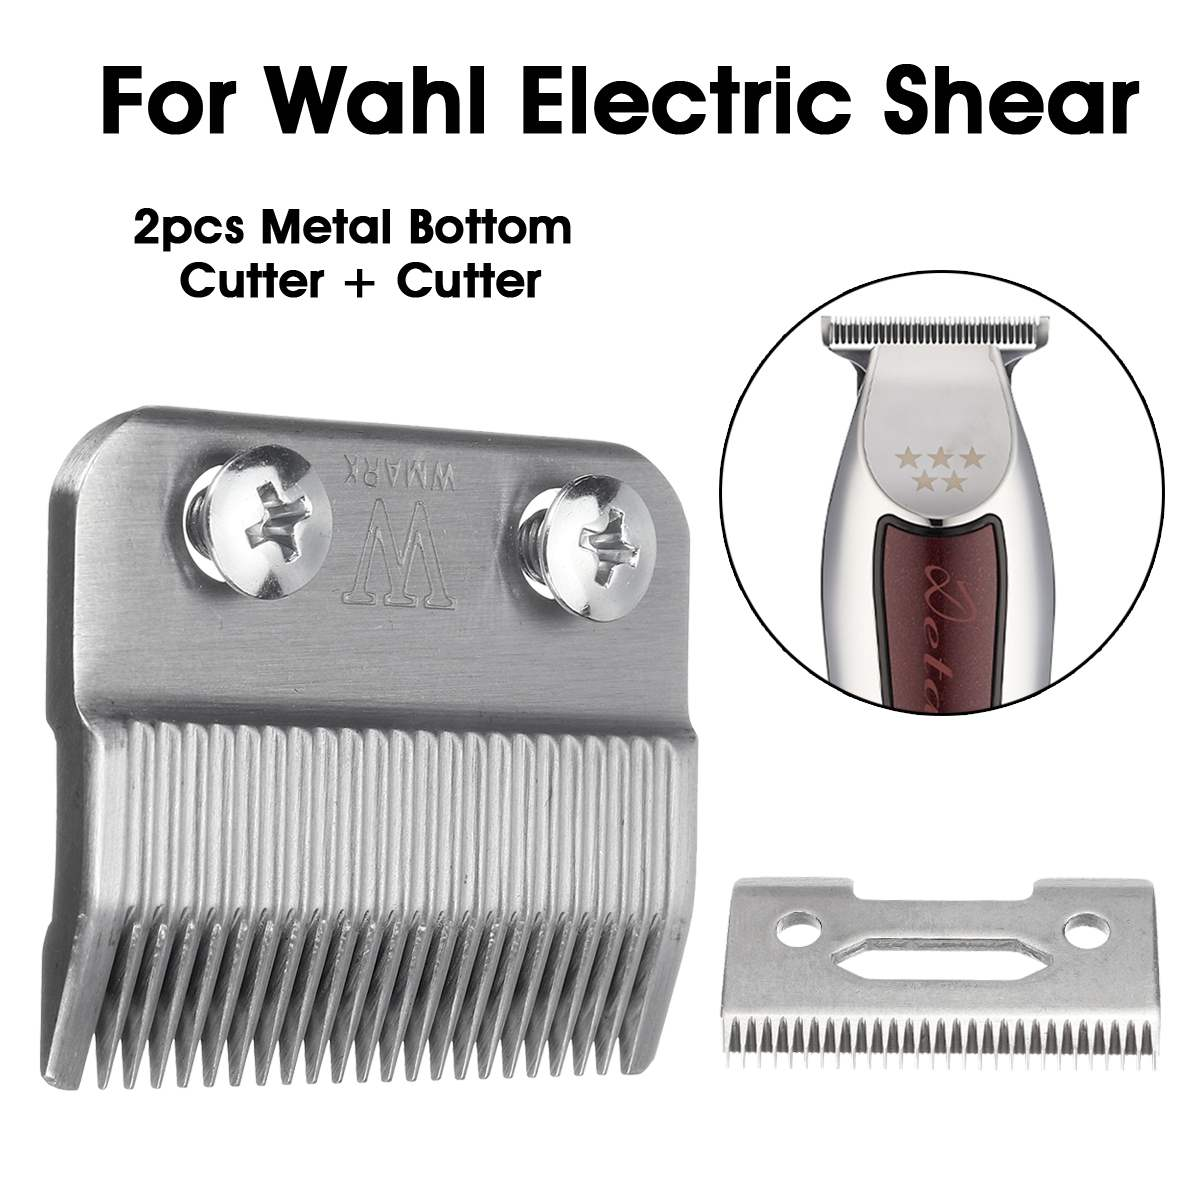 2pcs Sliver 2 Hole Clipper Blade Cutter Metal Bottom Cutter For Wahl Electric Shear Hair Clipper Trimmers For Barber Home Use